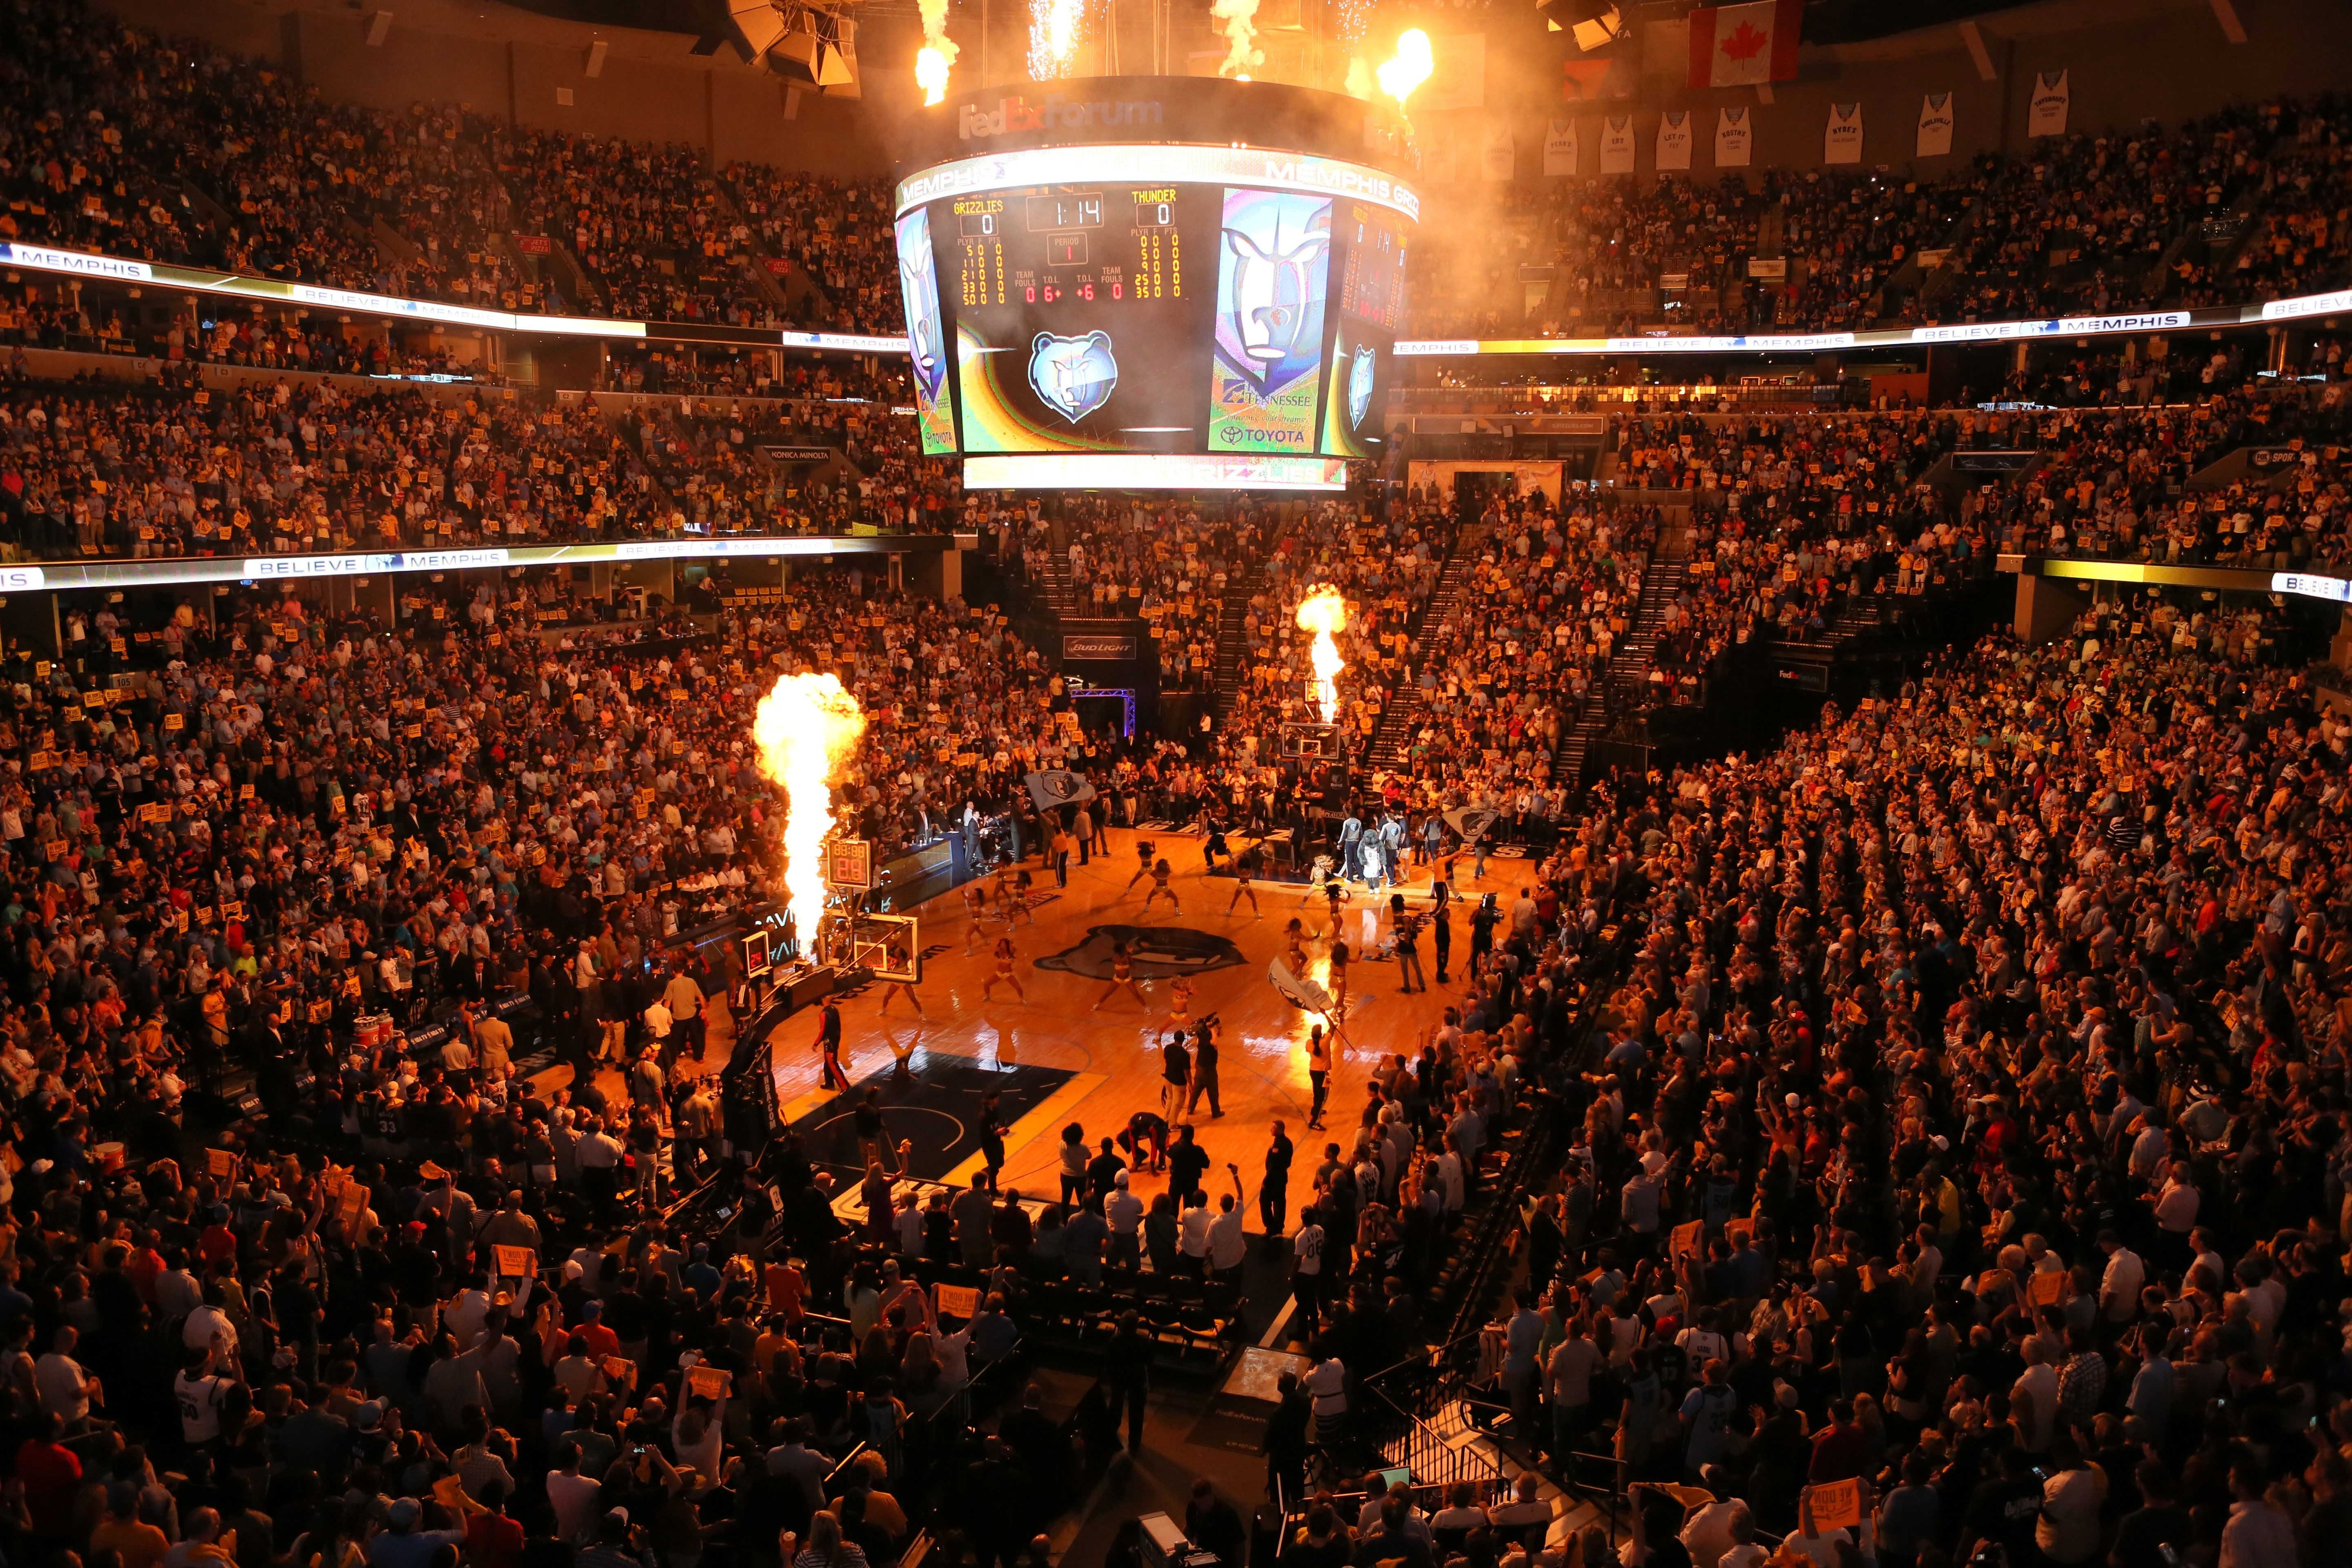 The day before a key Game 6 in the Grindhouse, GBBLive will talk OKC vs. MEM and much more!